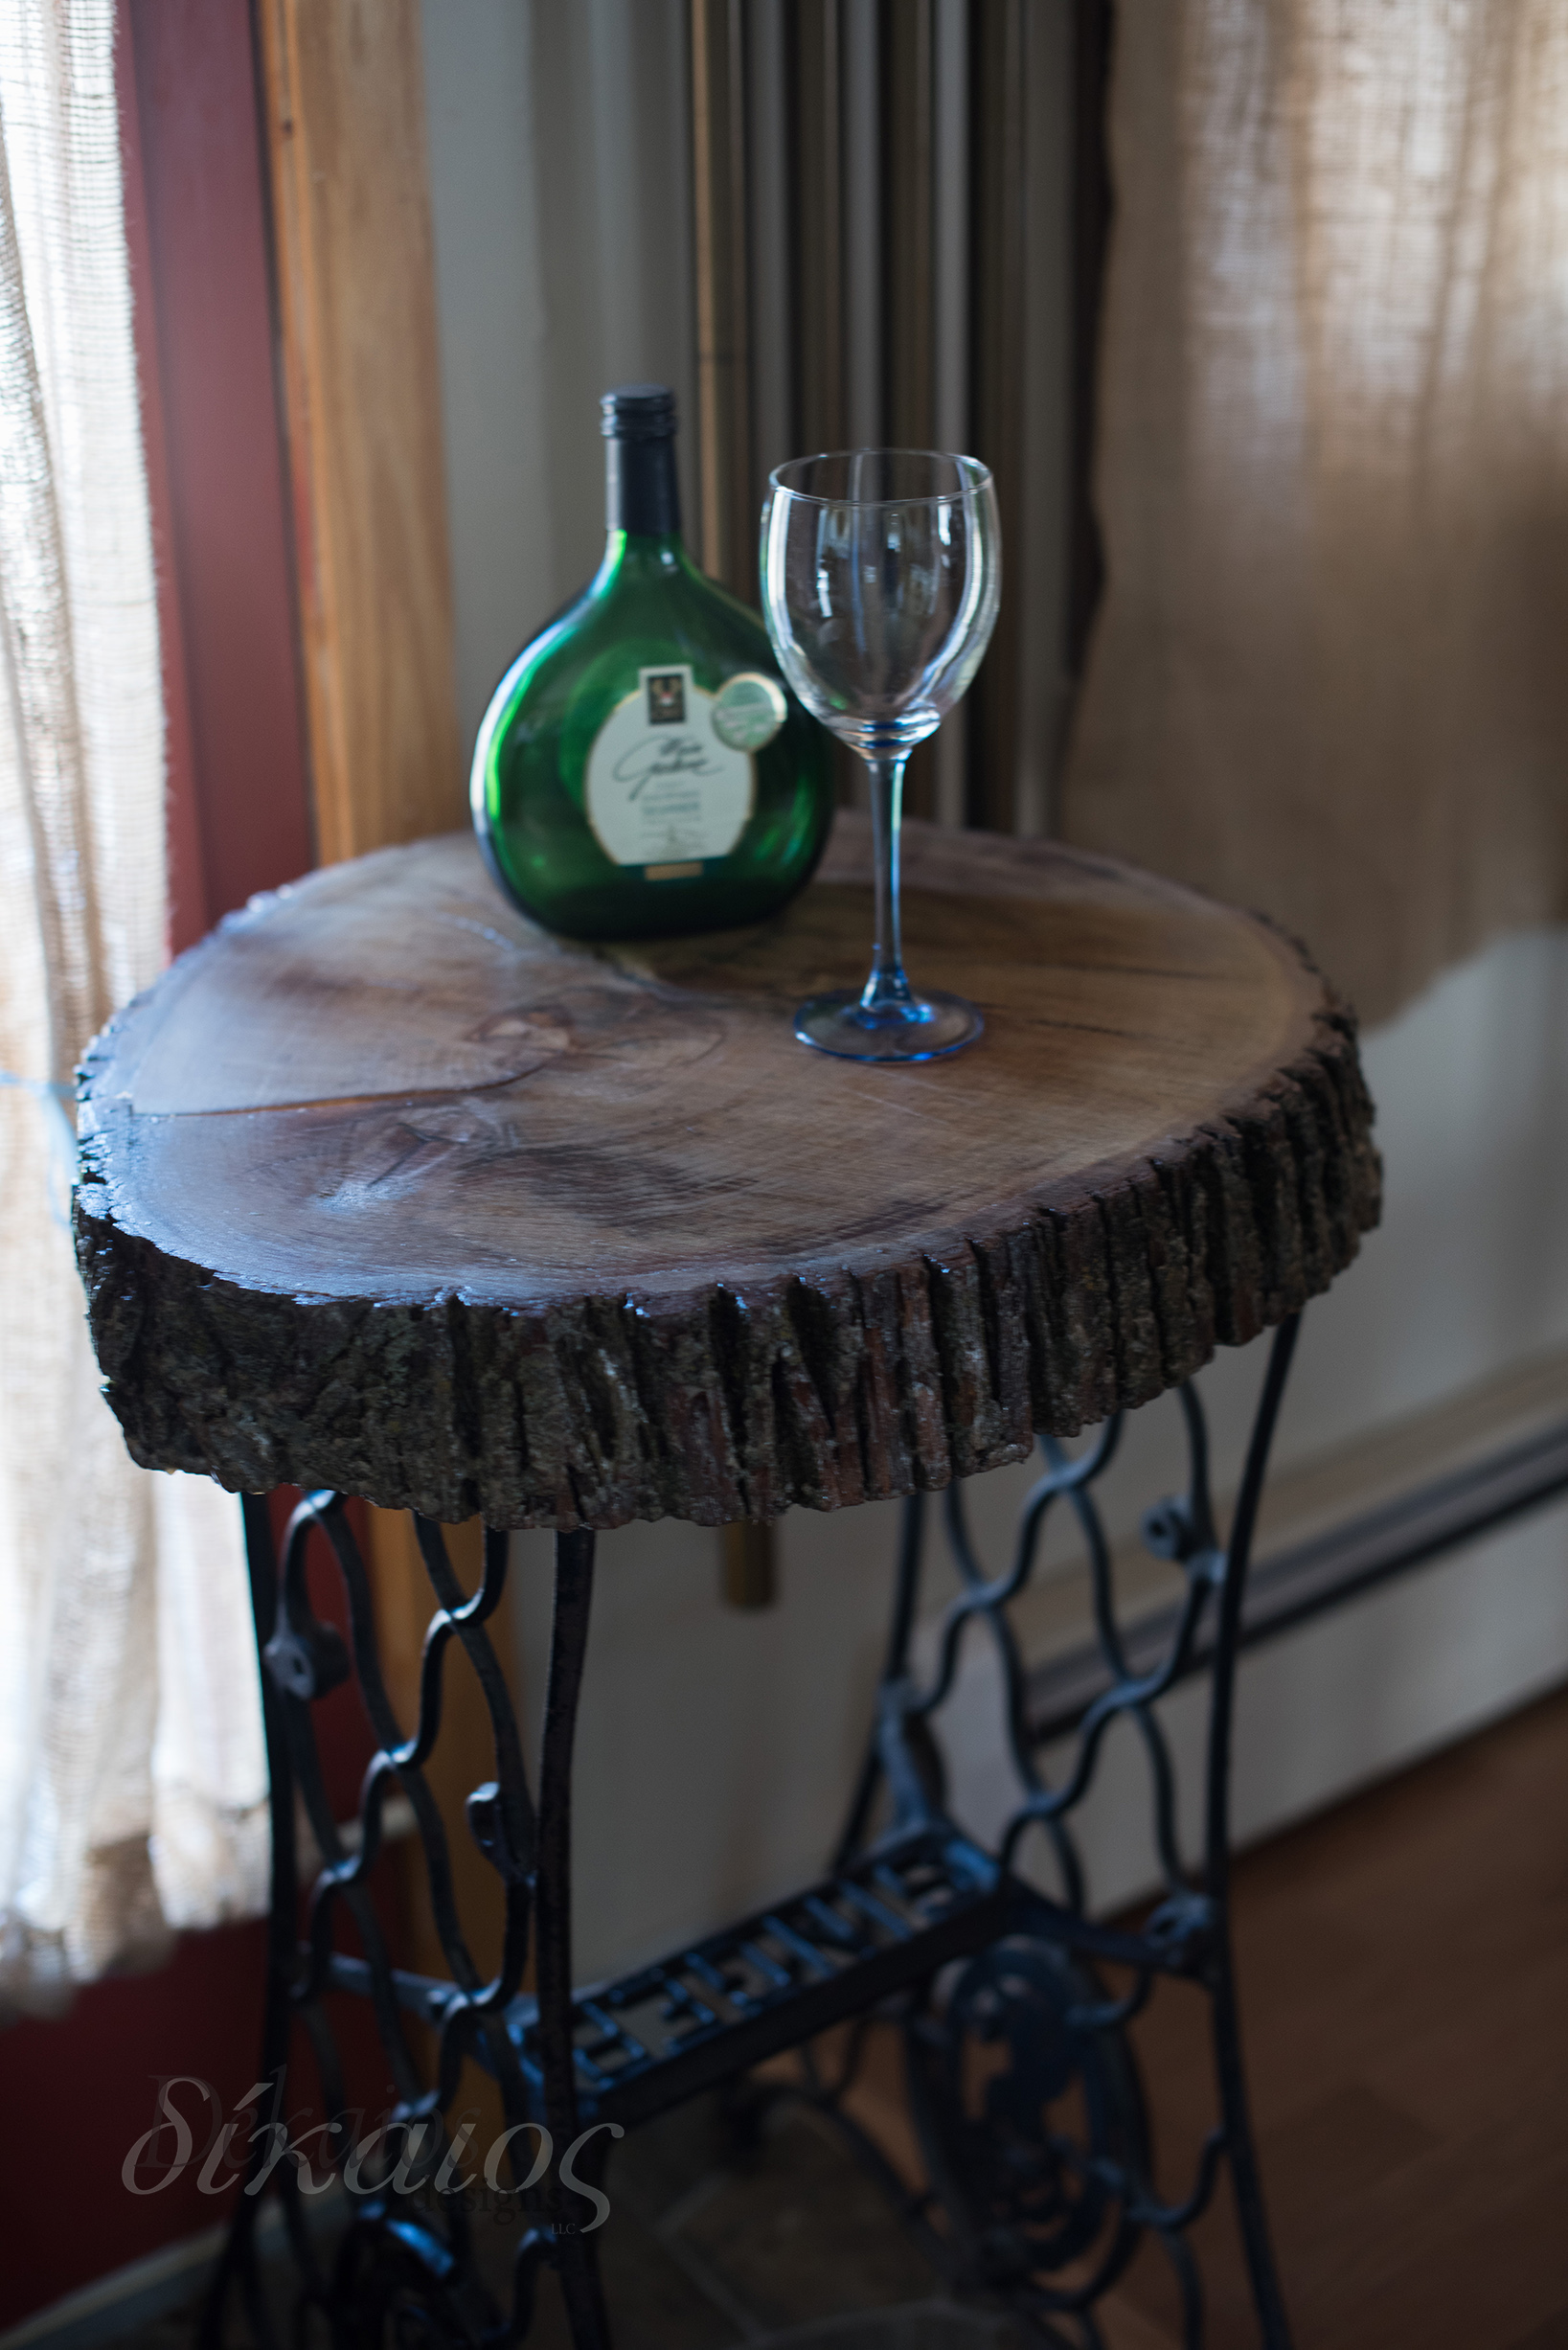 This table is one of my more recent projects. It's for sale at my booth at Antique Up.